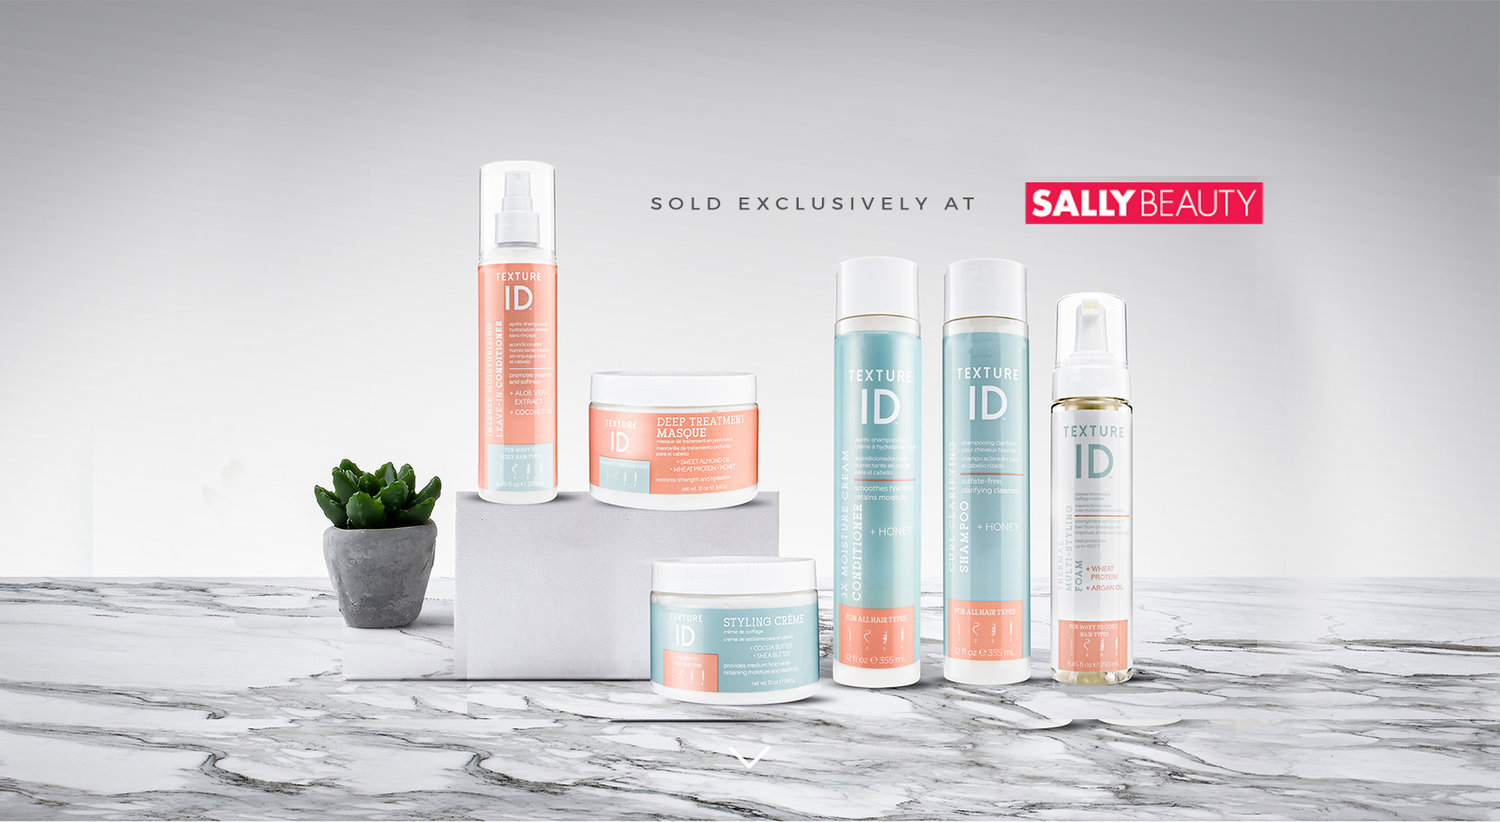 Texture ID   Sally Beauty Multicultural Product